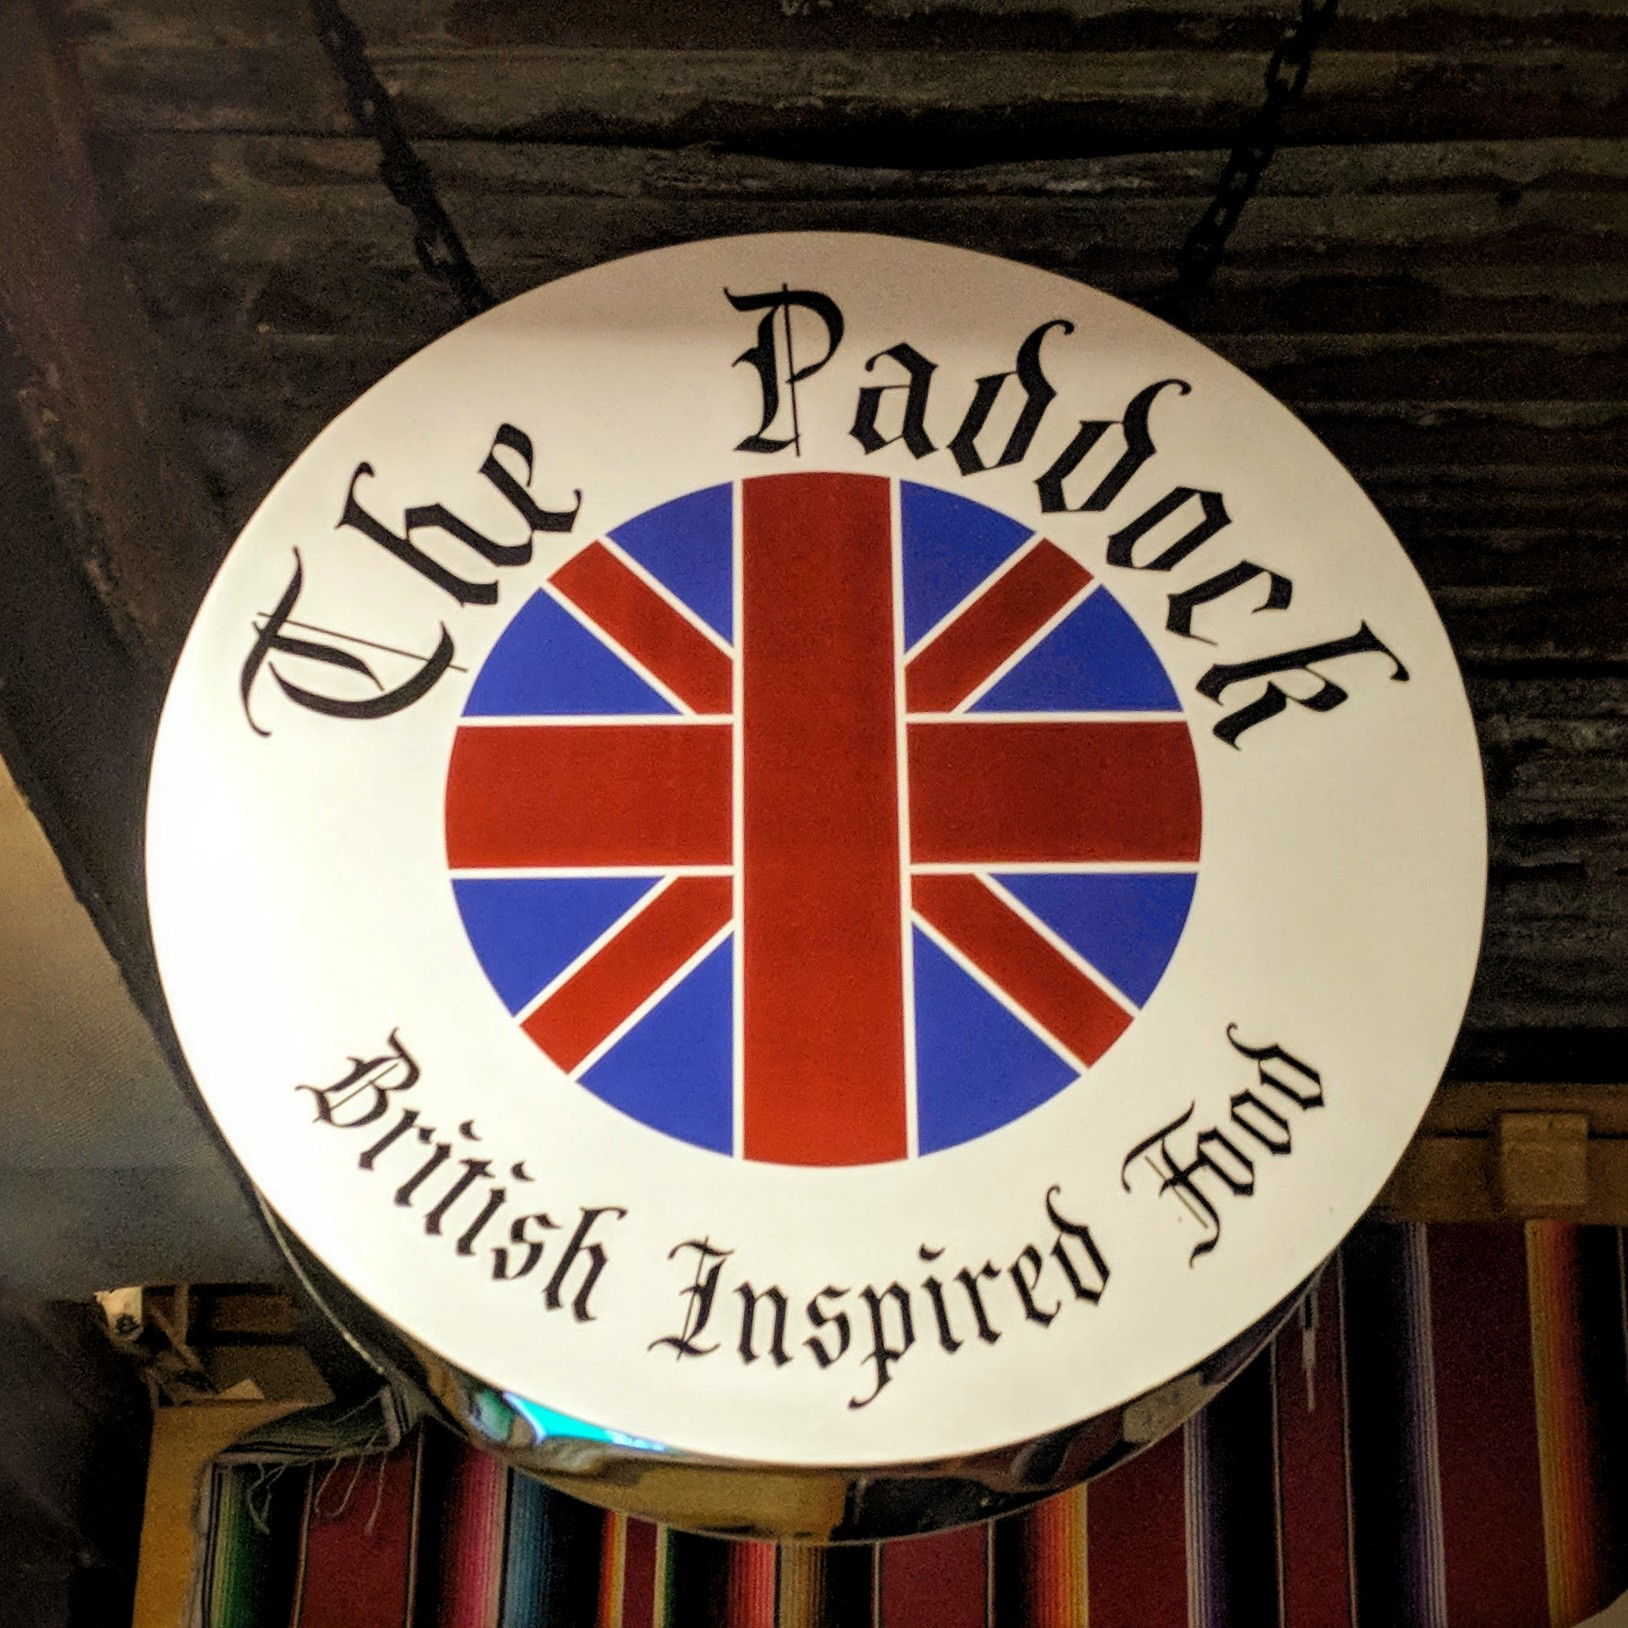 'The Paddocks - British Inspired Food', sign